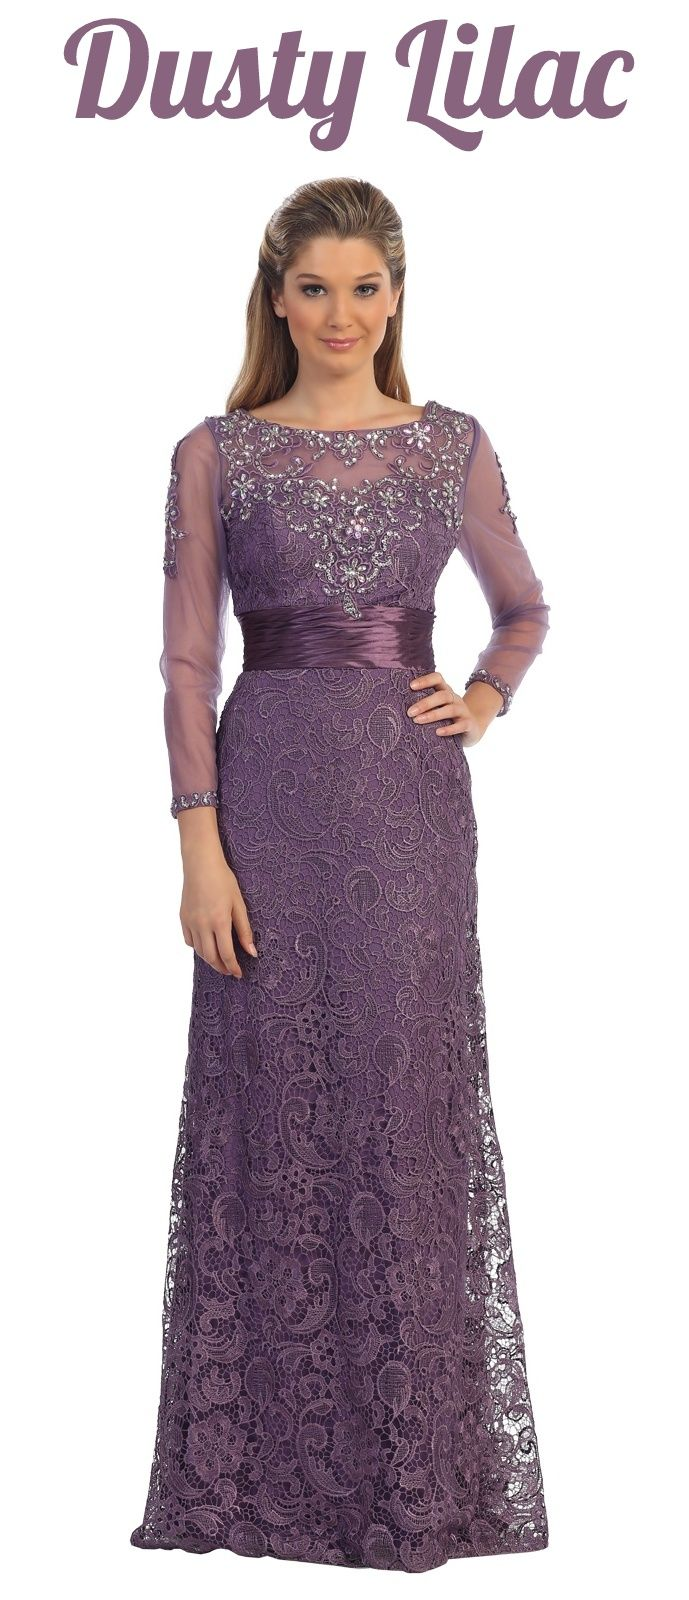 Mother Of The Bride Outfit For Spring Or Summer Long Sleeve Lavender Gown With Embellis Evening Dresses With Sleeves Lavender Gown Mother Of The Bride Outfit